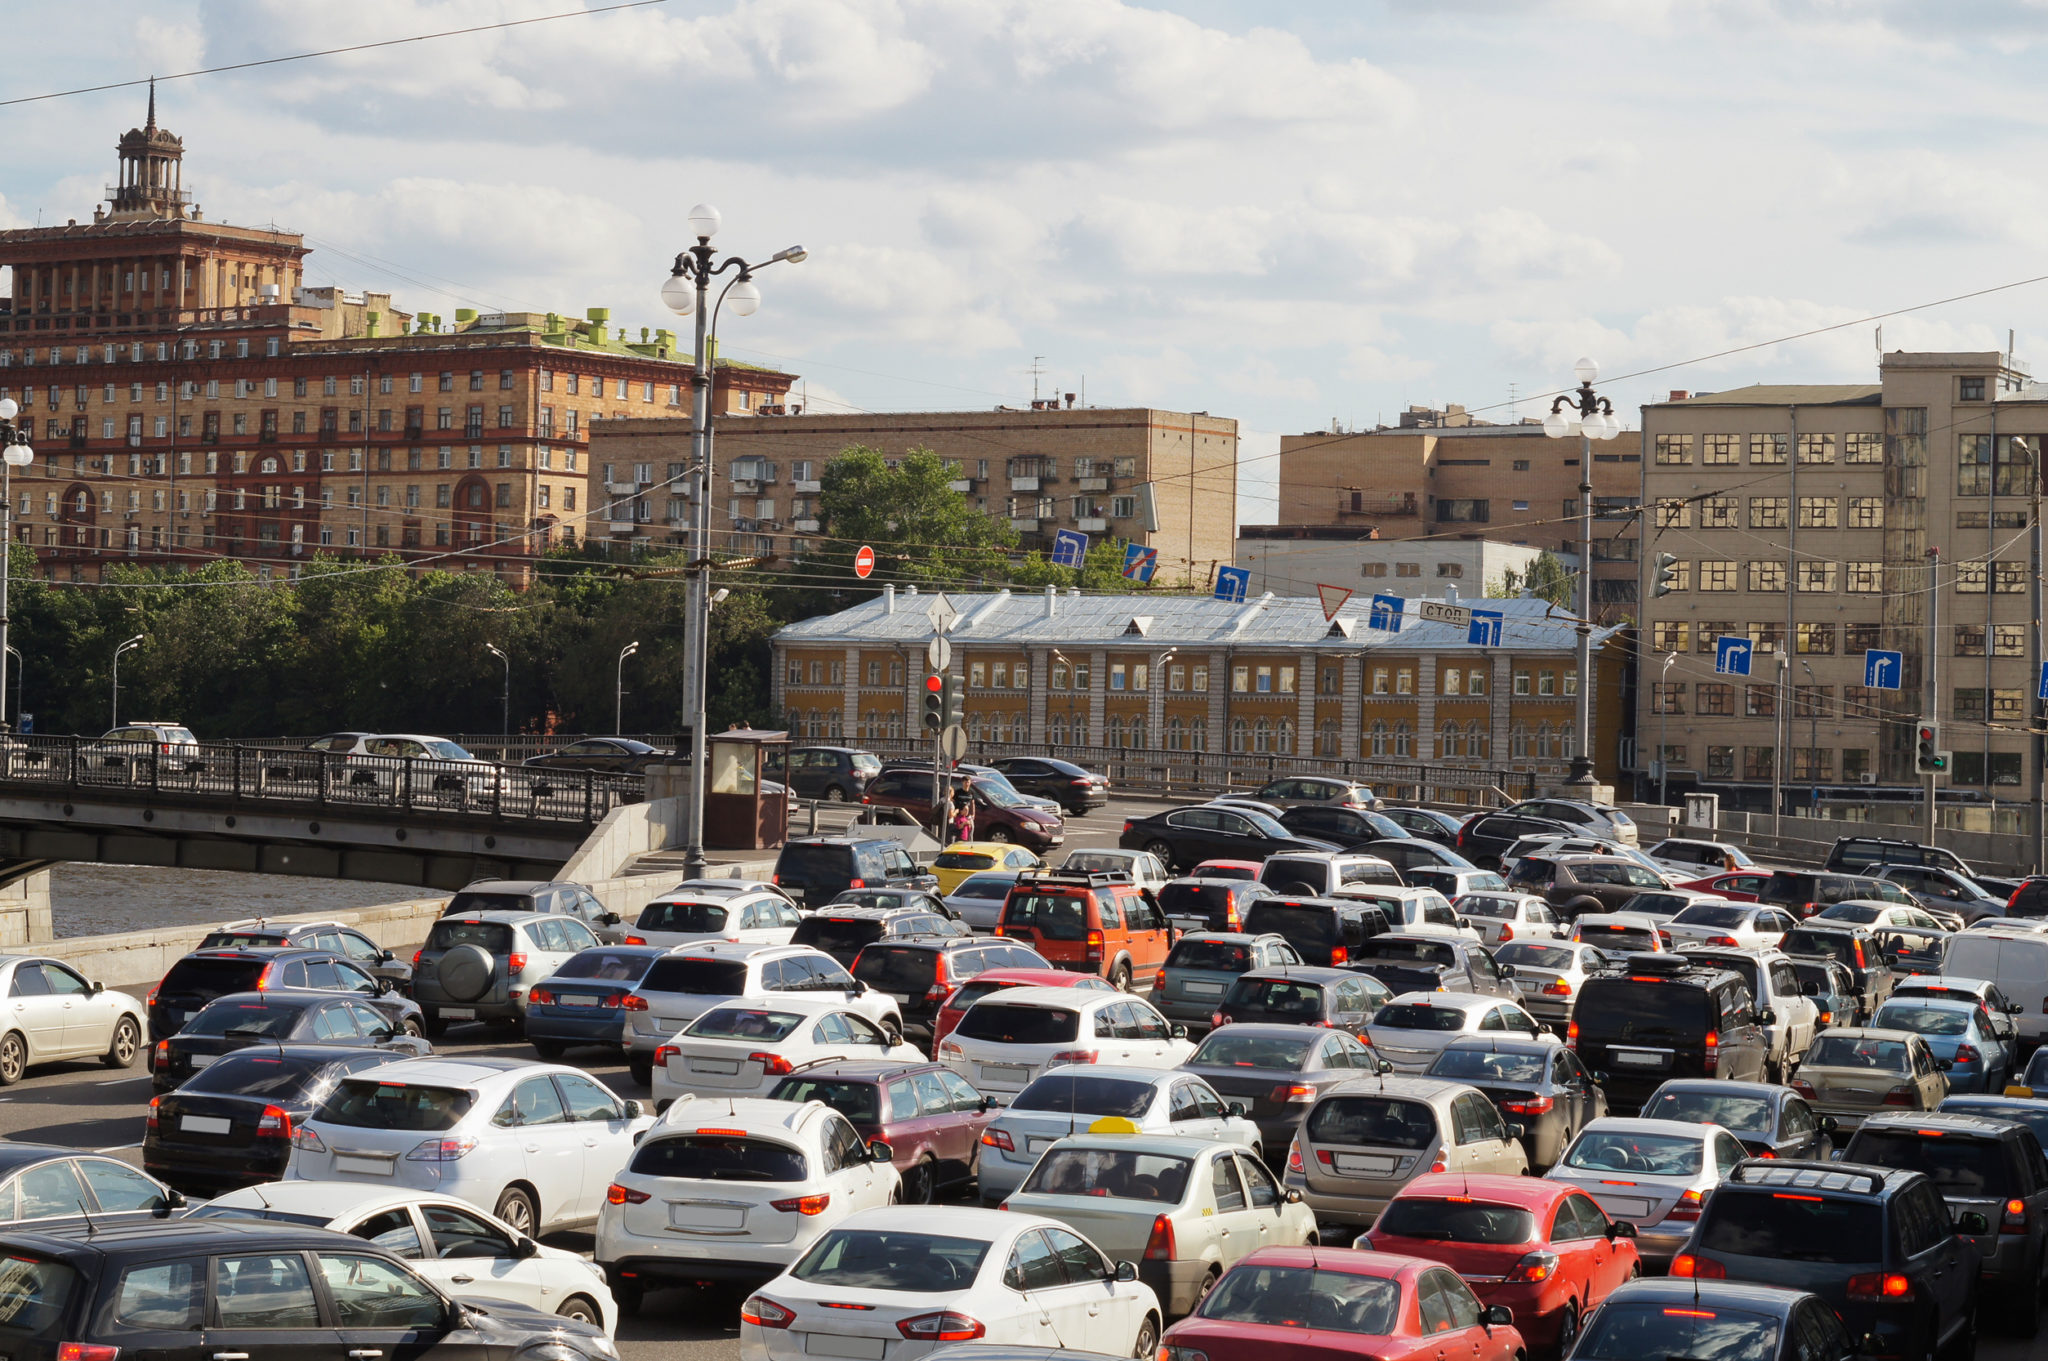 INRIX, cdcom partner to help Russian drivers navigate increasingly clogged roads